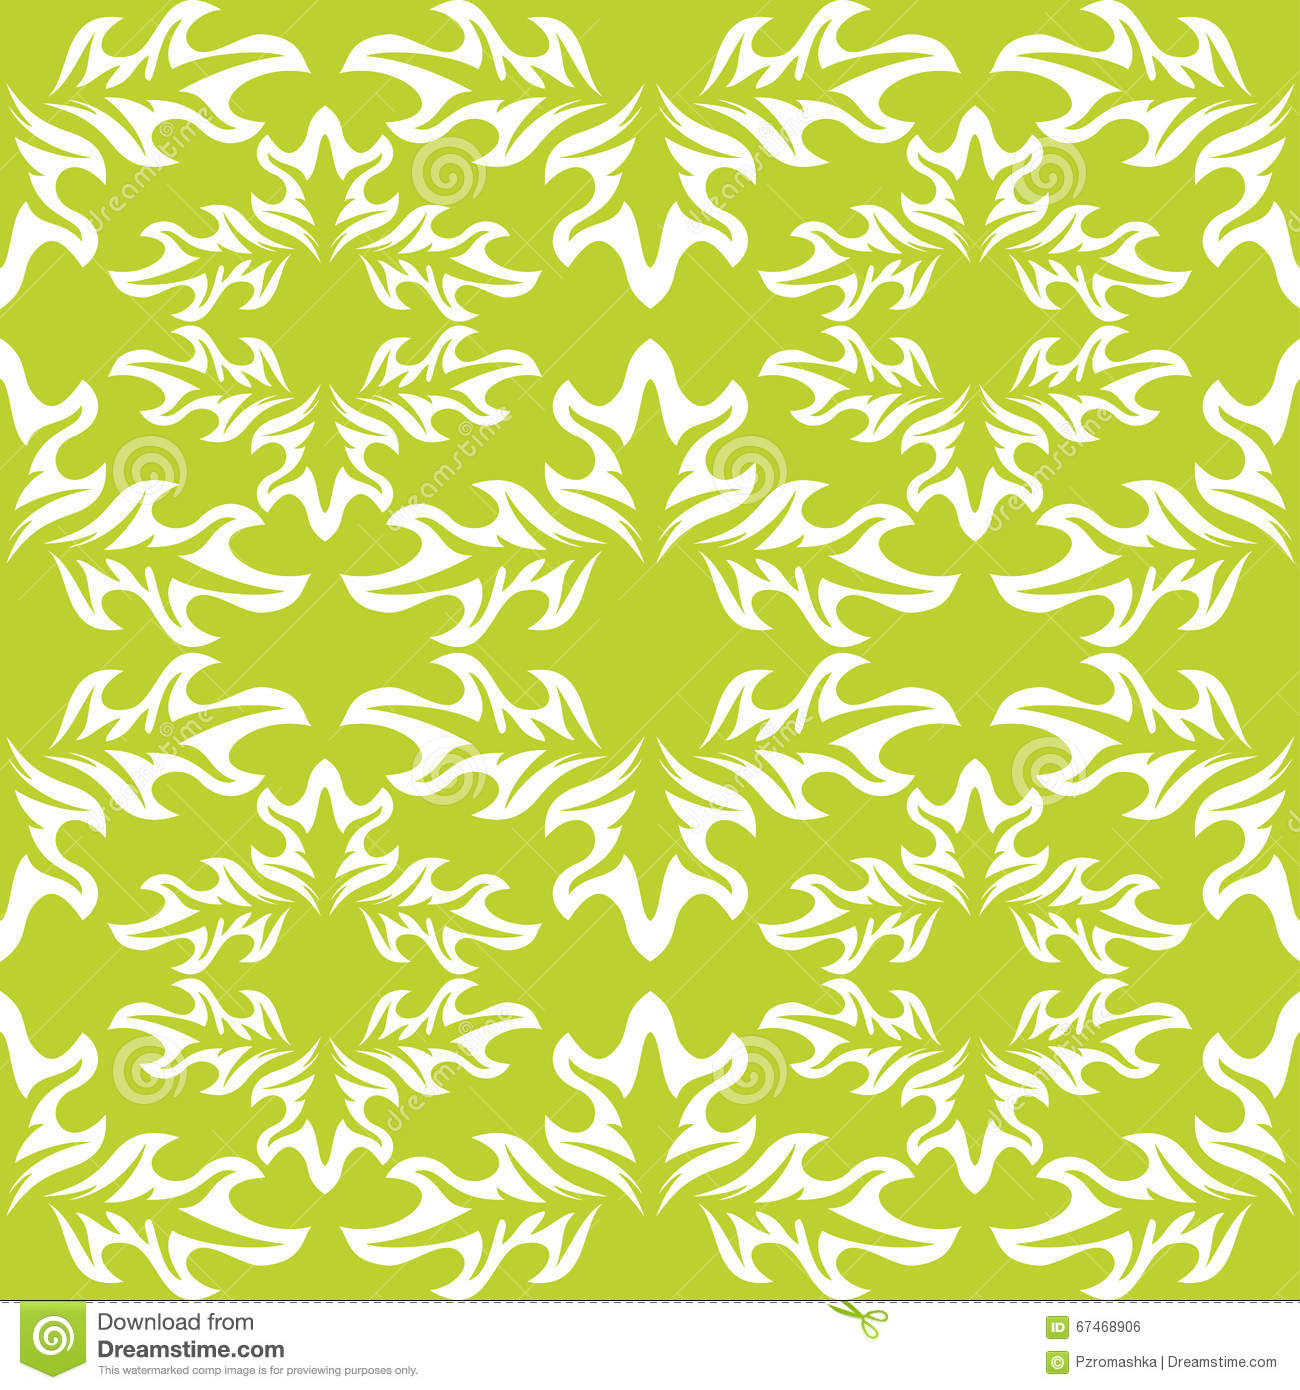 Green Wallpaper With White Leaf Pattern